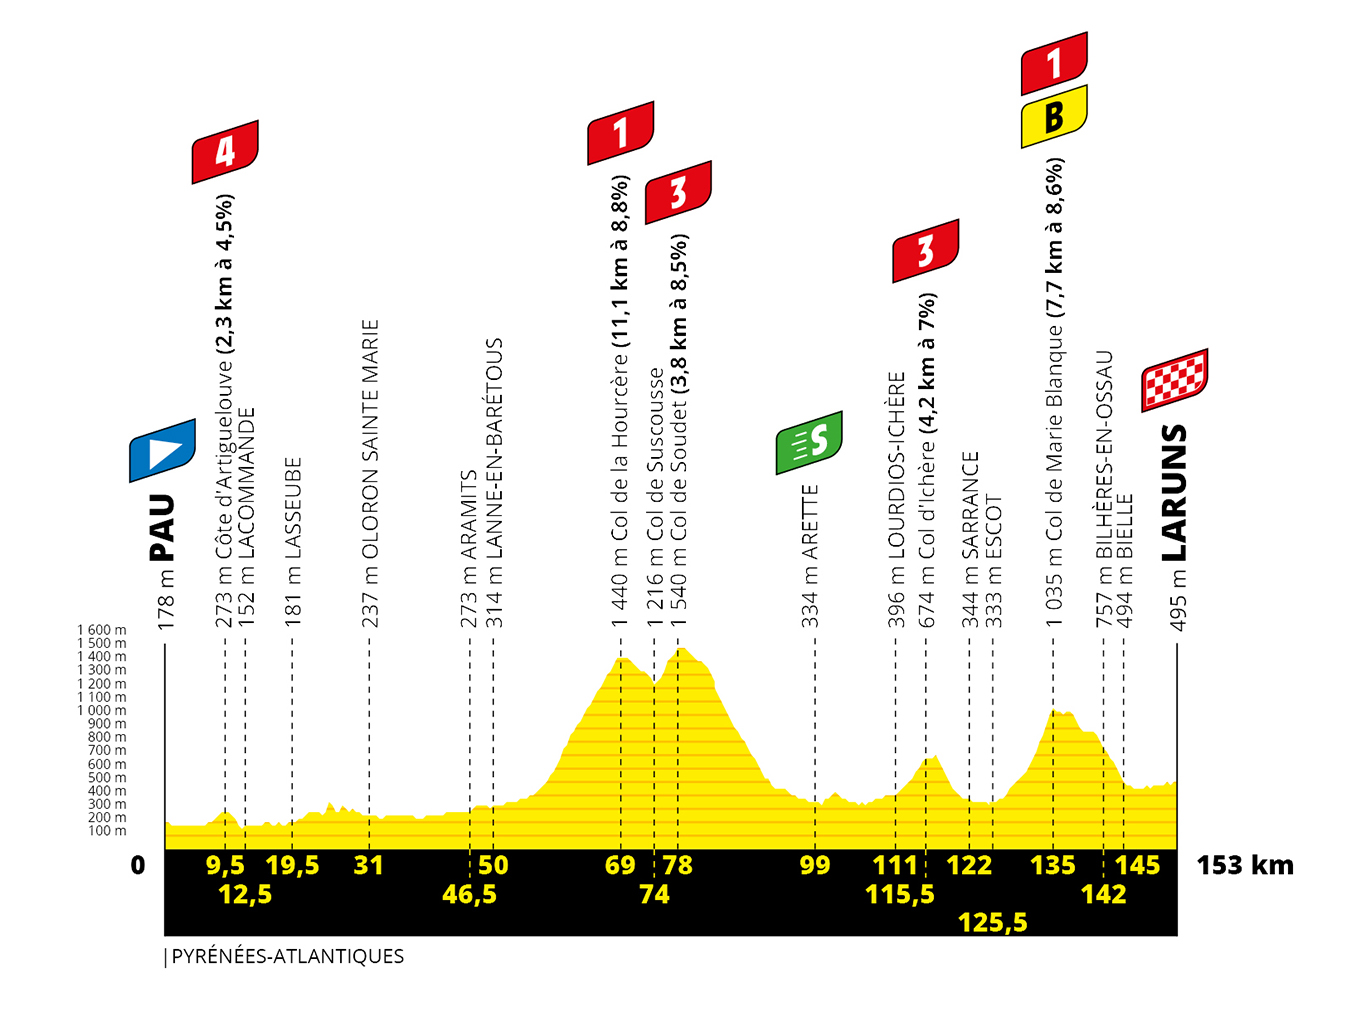 The profile of stage 9 of the Tour de France